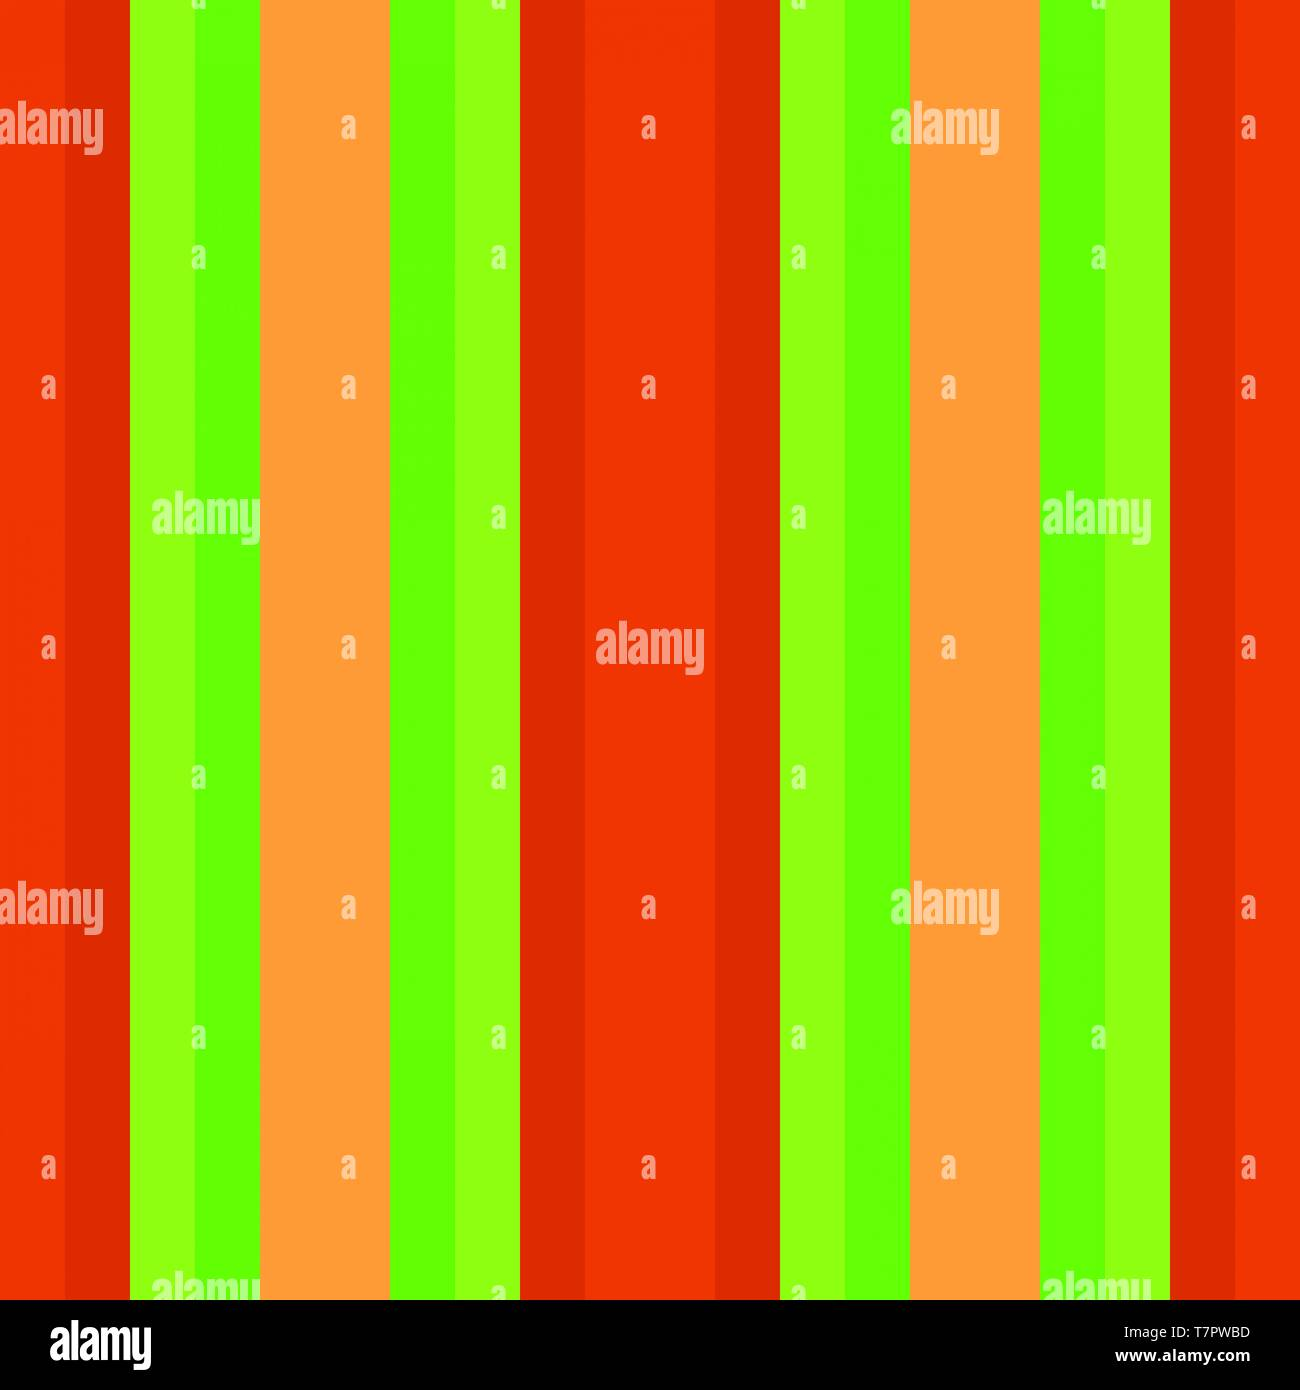 Vivid Color Vertical Lines With Lawn Green Orange Red And